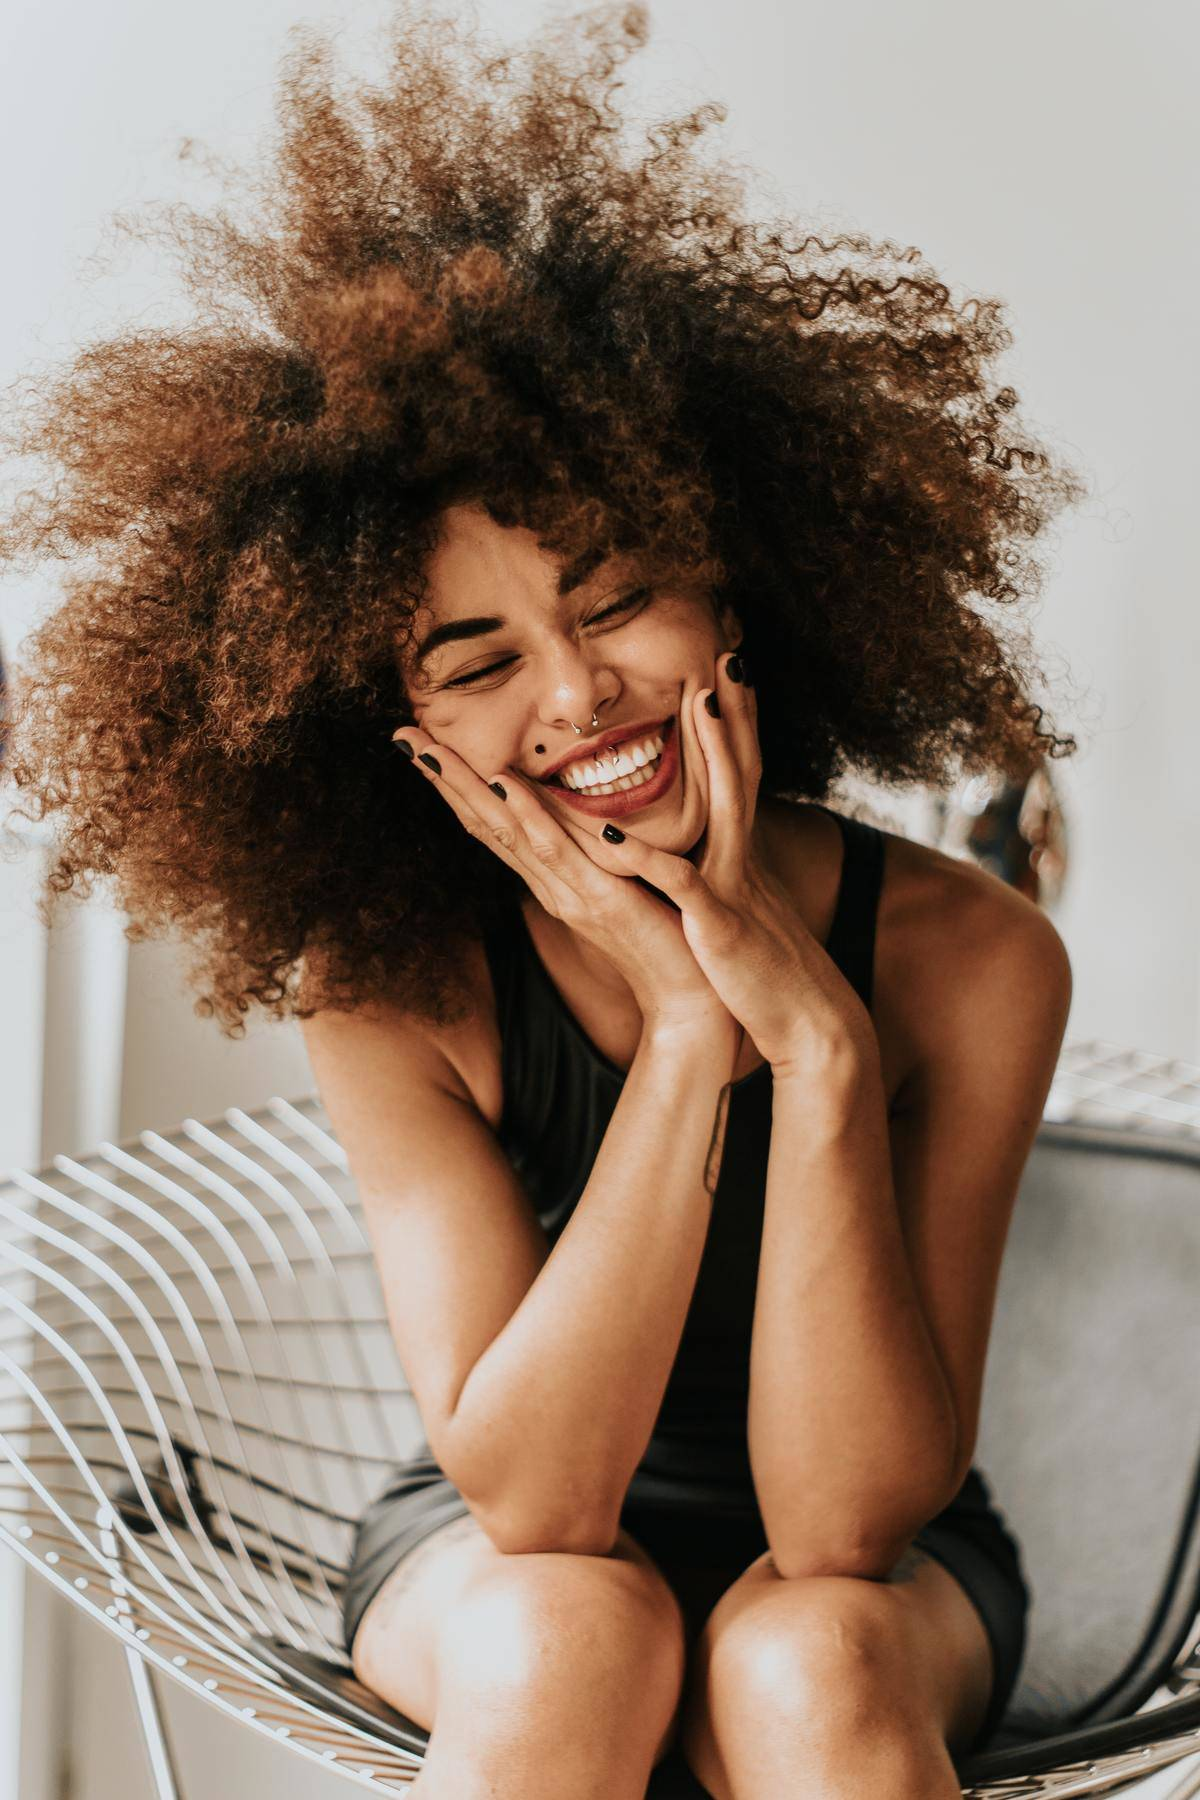 a woman sitting on a chair with a really big smile